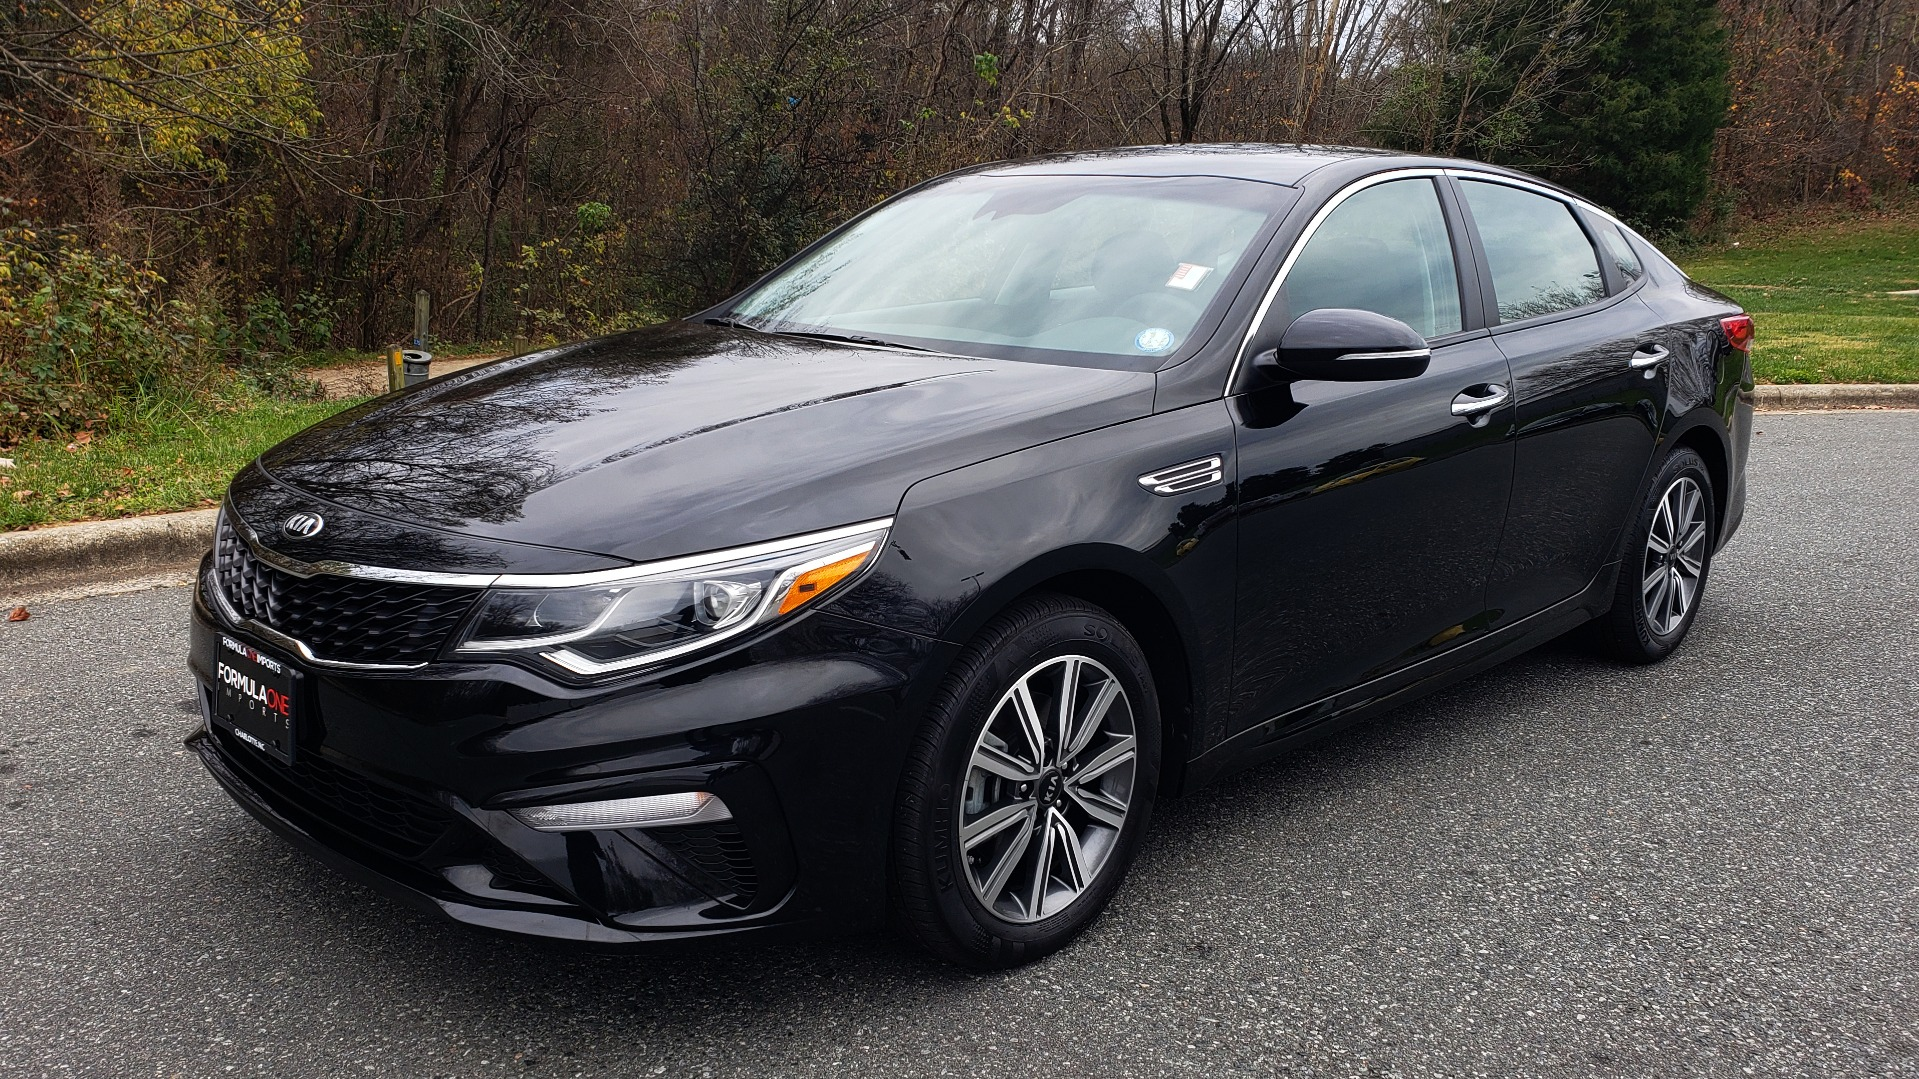 Used 2019 Kia OPTIMA LX AUTO / 2.4L 4-CYL / 6-SPD AUTO / REARVIEW / LOW MILES for sale $17,995 at Formula Imports in Charlotte NC 28227 1